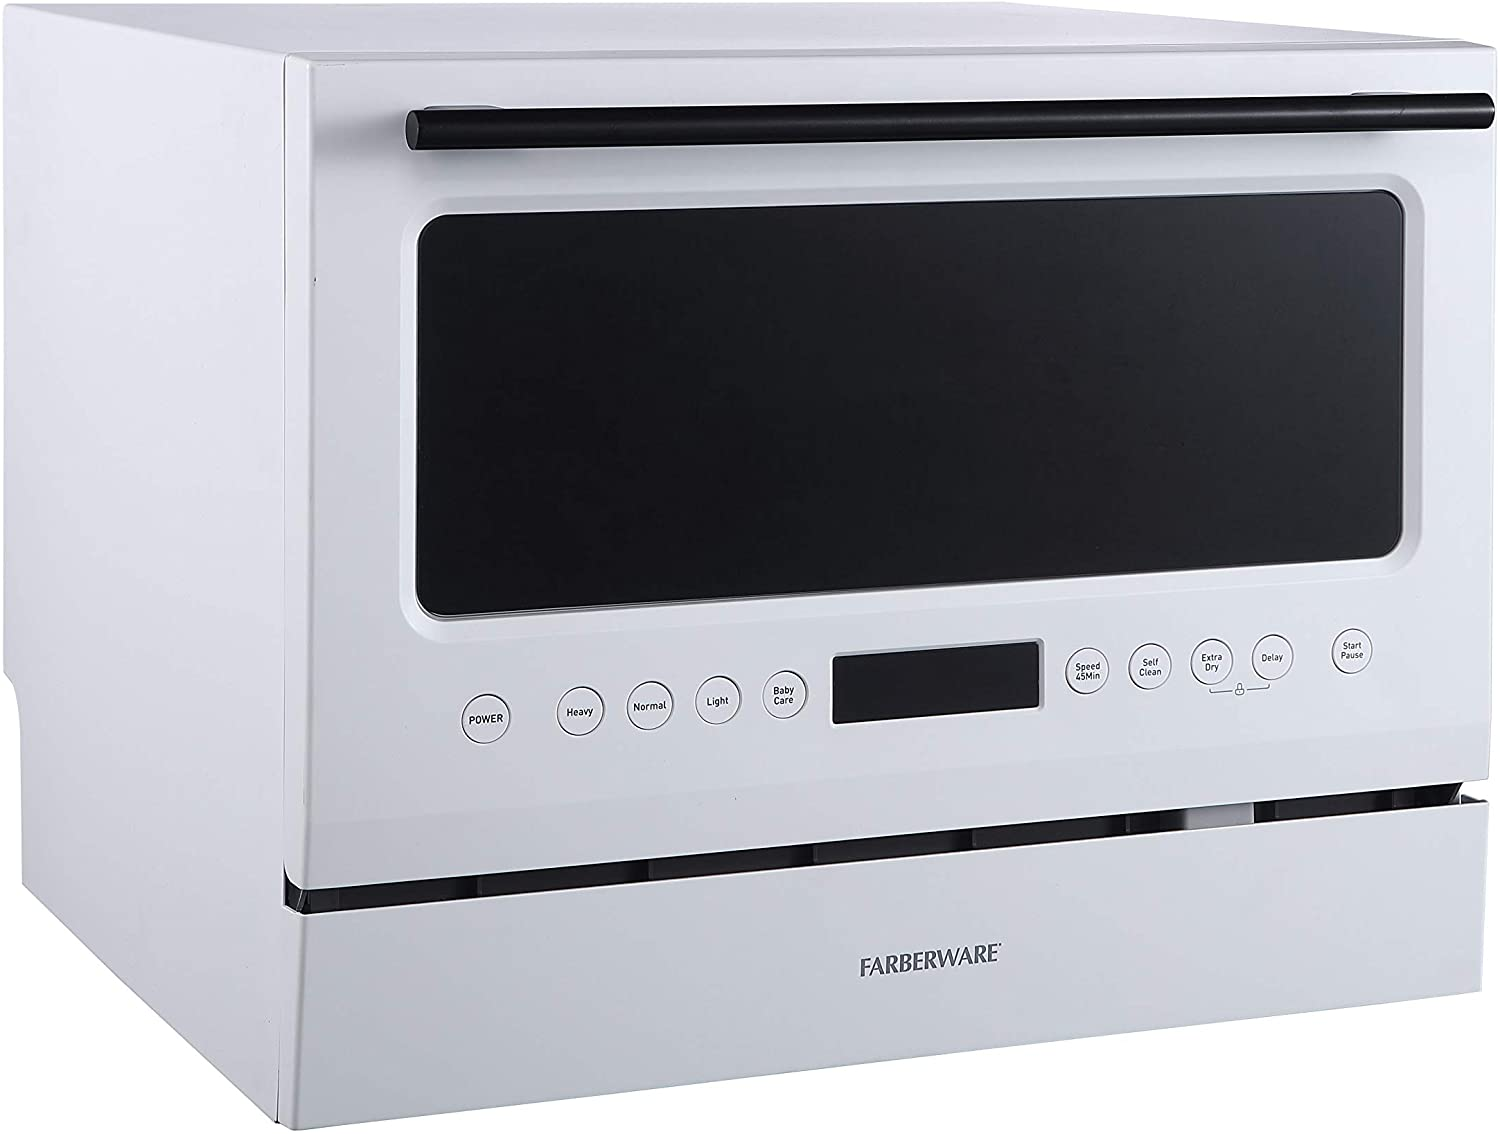 This Farberware unit makes a great RV dishwasher